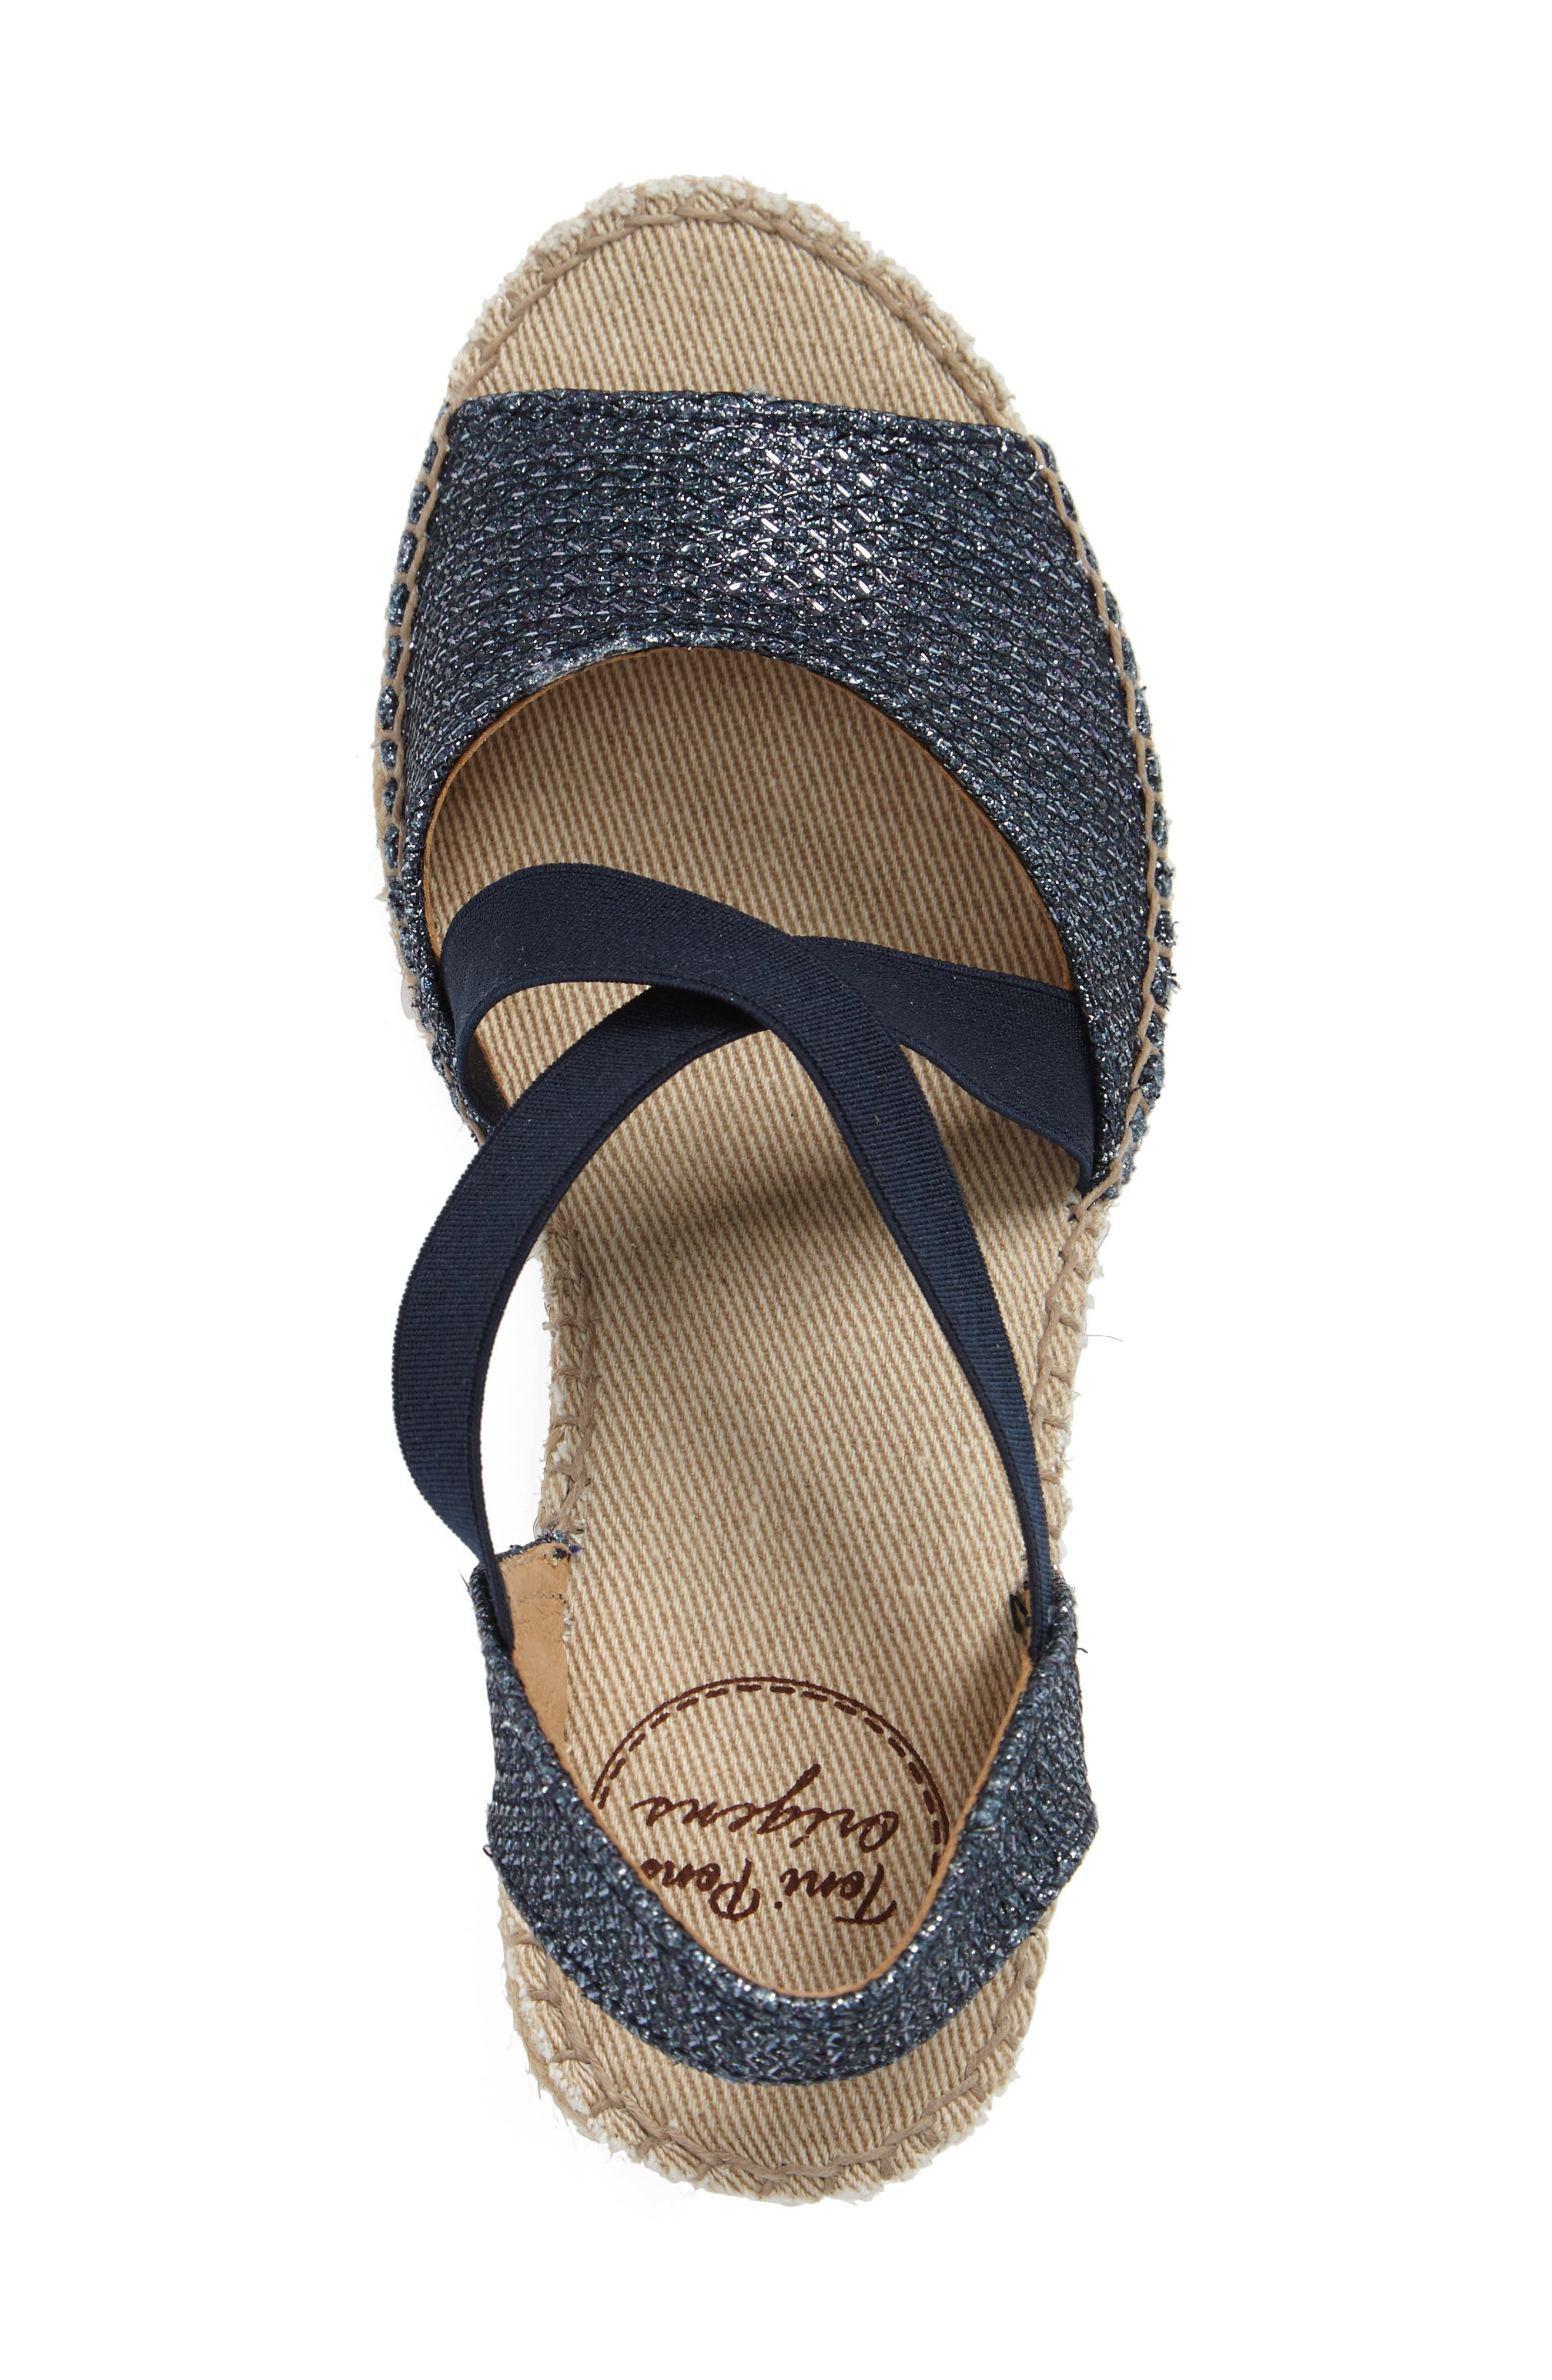 Sol Wedge Espadrille Sandal,                             Alternate thumbnail 3, color,                             NAVY FABRIC